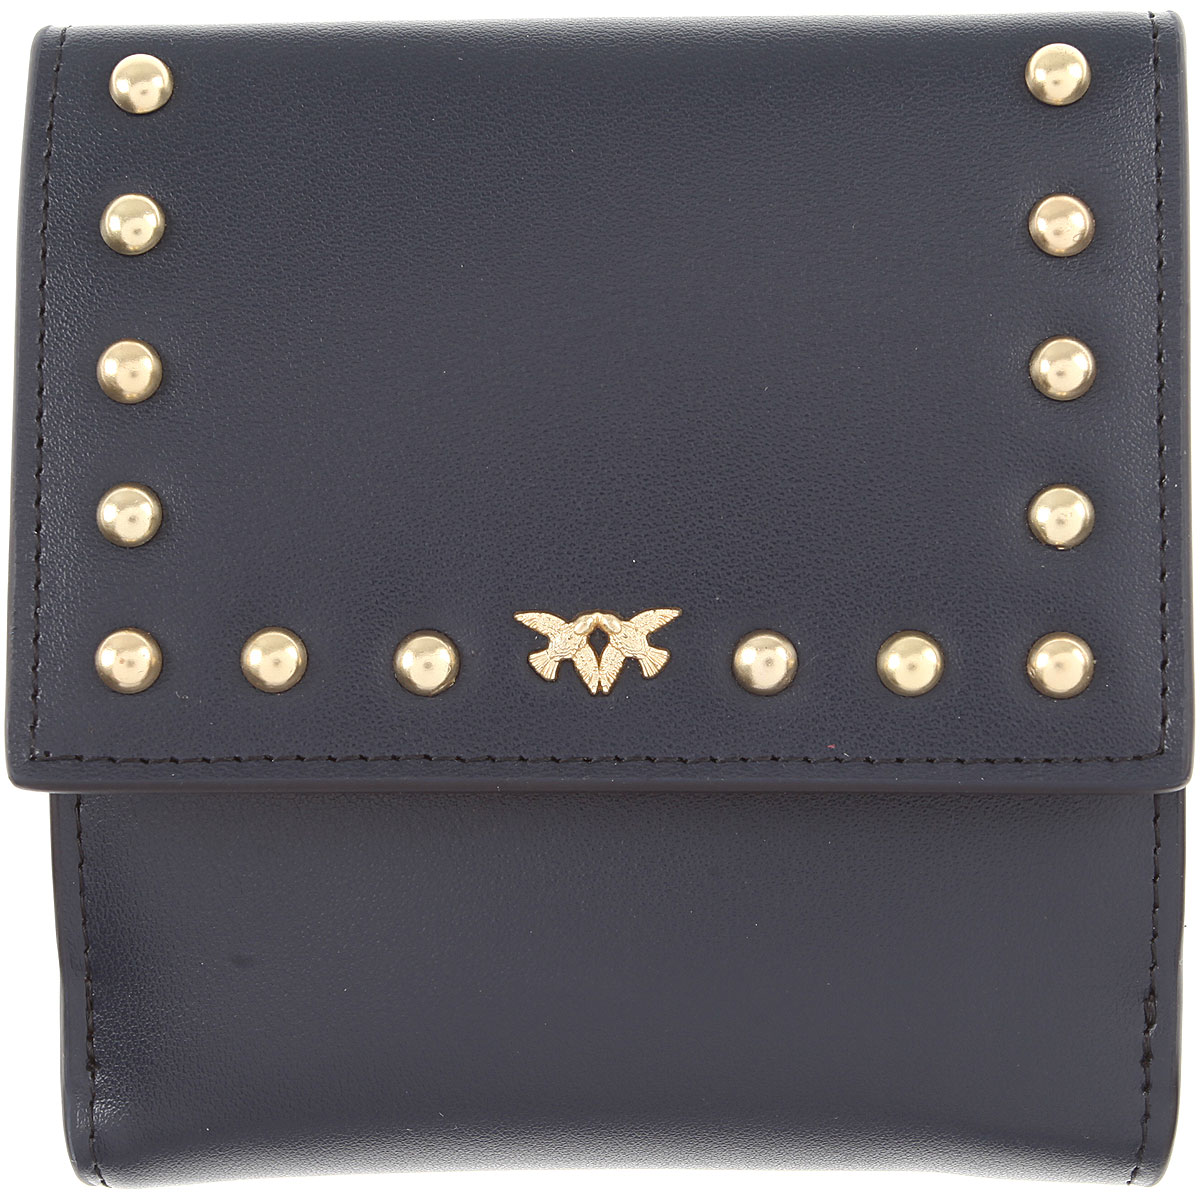 Image of Pinko Wallet for Women, Dark Blue Navy, Leather, 2017